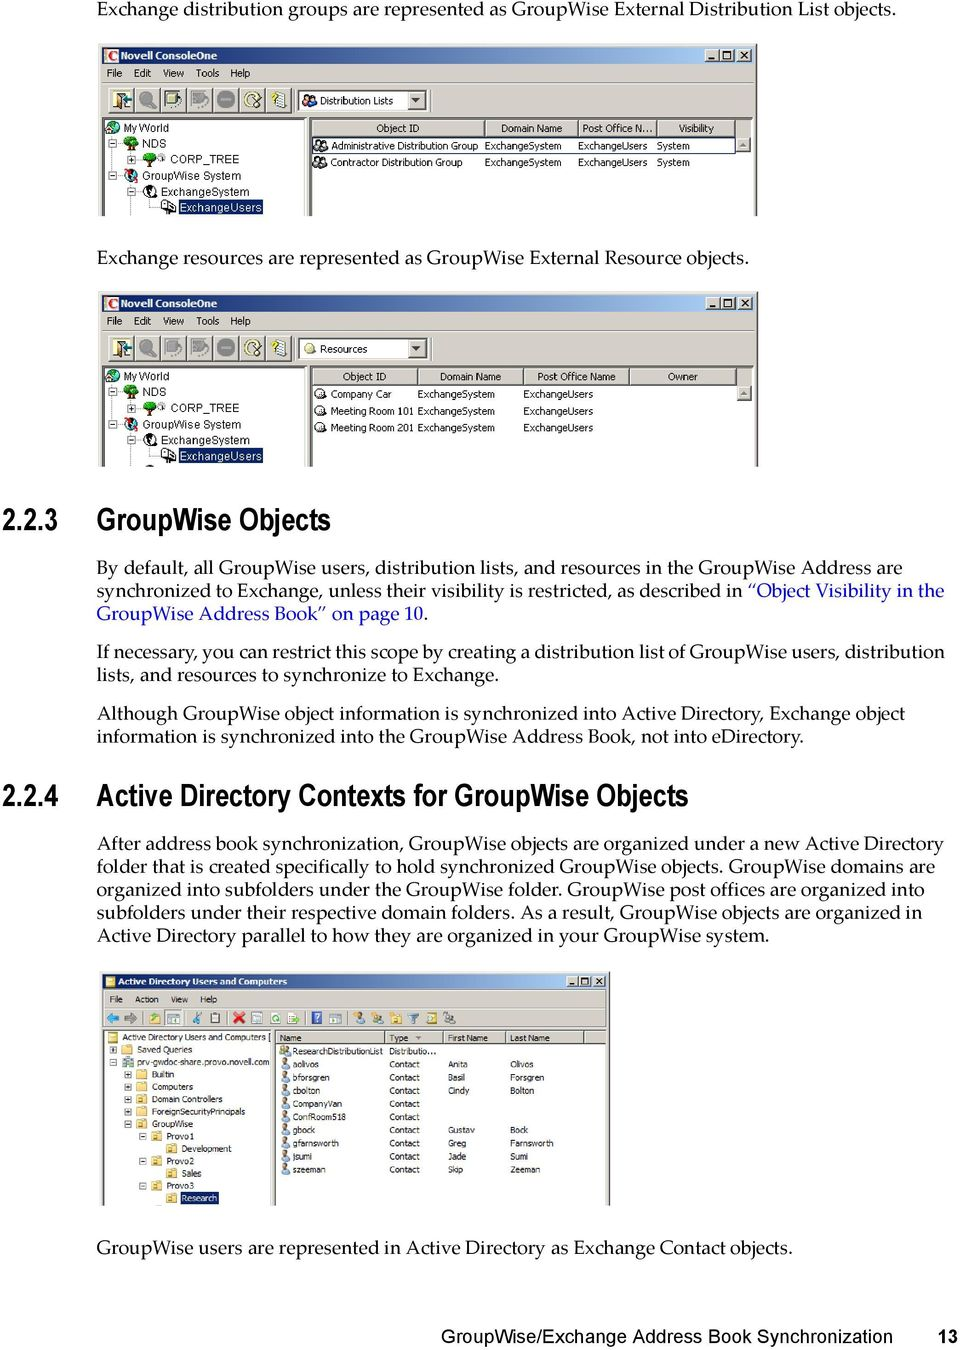 Object Visibility in the GroupWise Address Book on page 10.